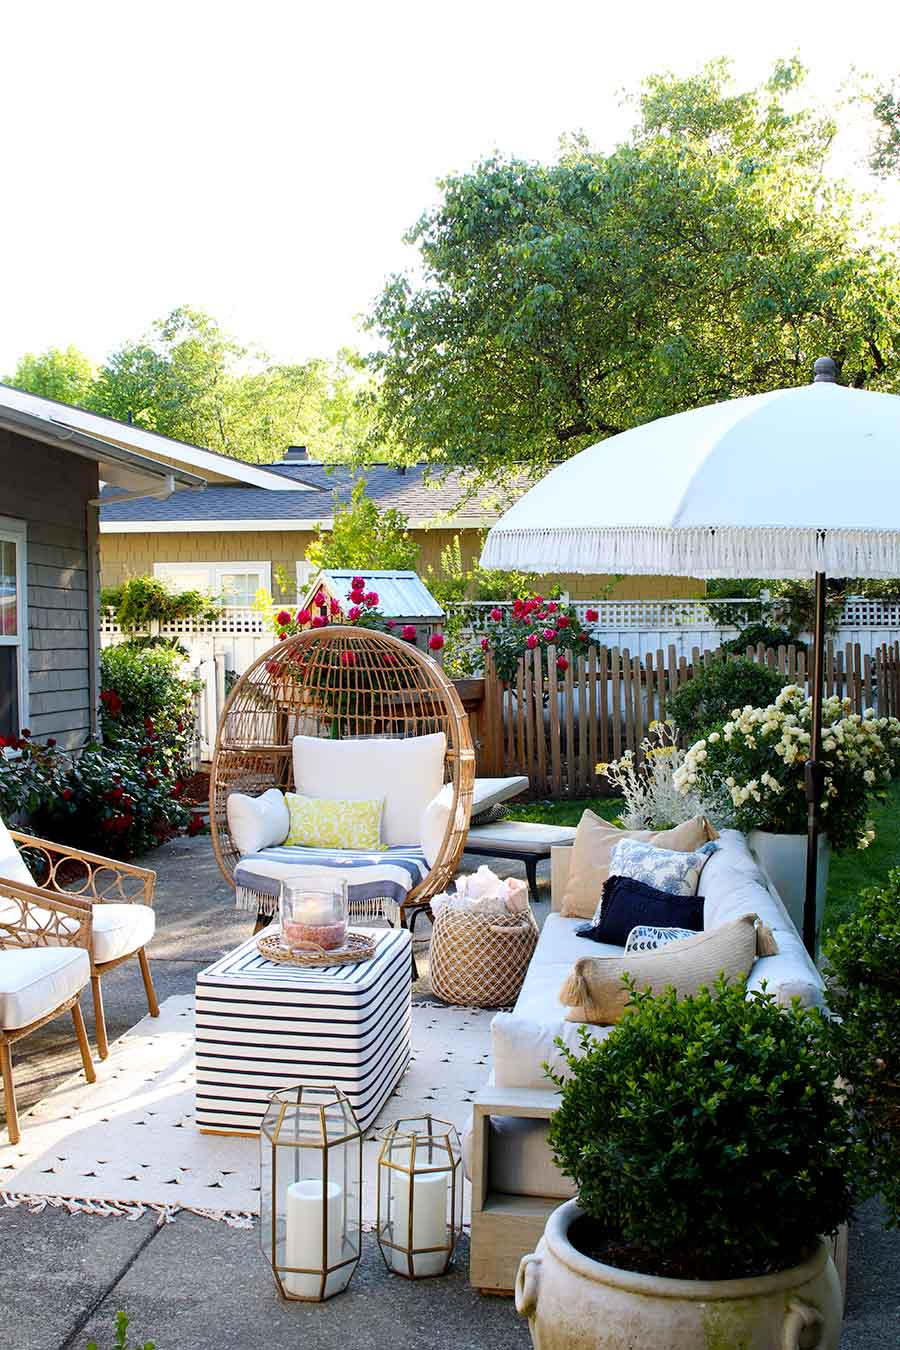 Summer Decorating Ideas For Outdoor Entertaining The Happy within Decorating Ideas For Backyard Party